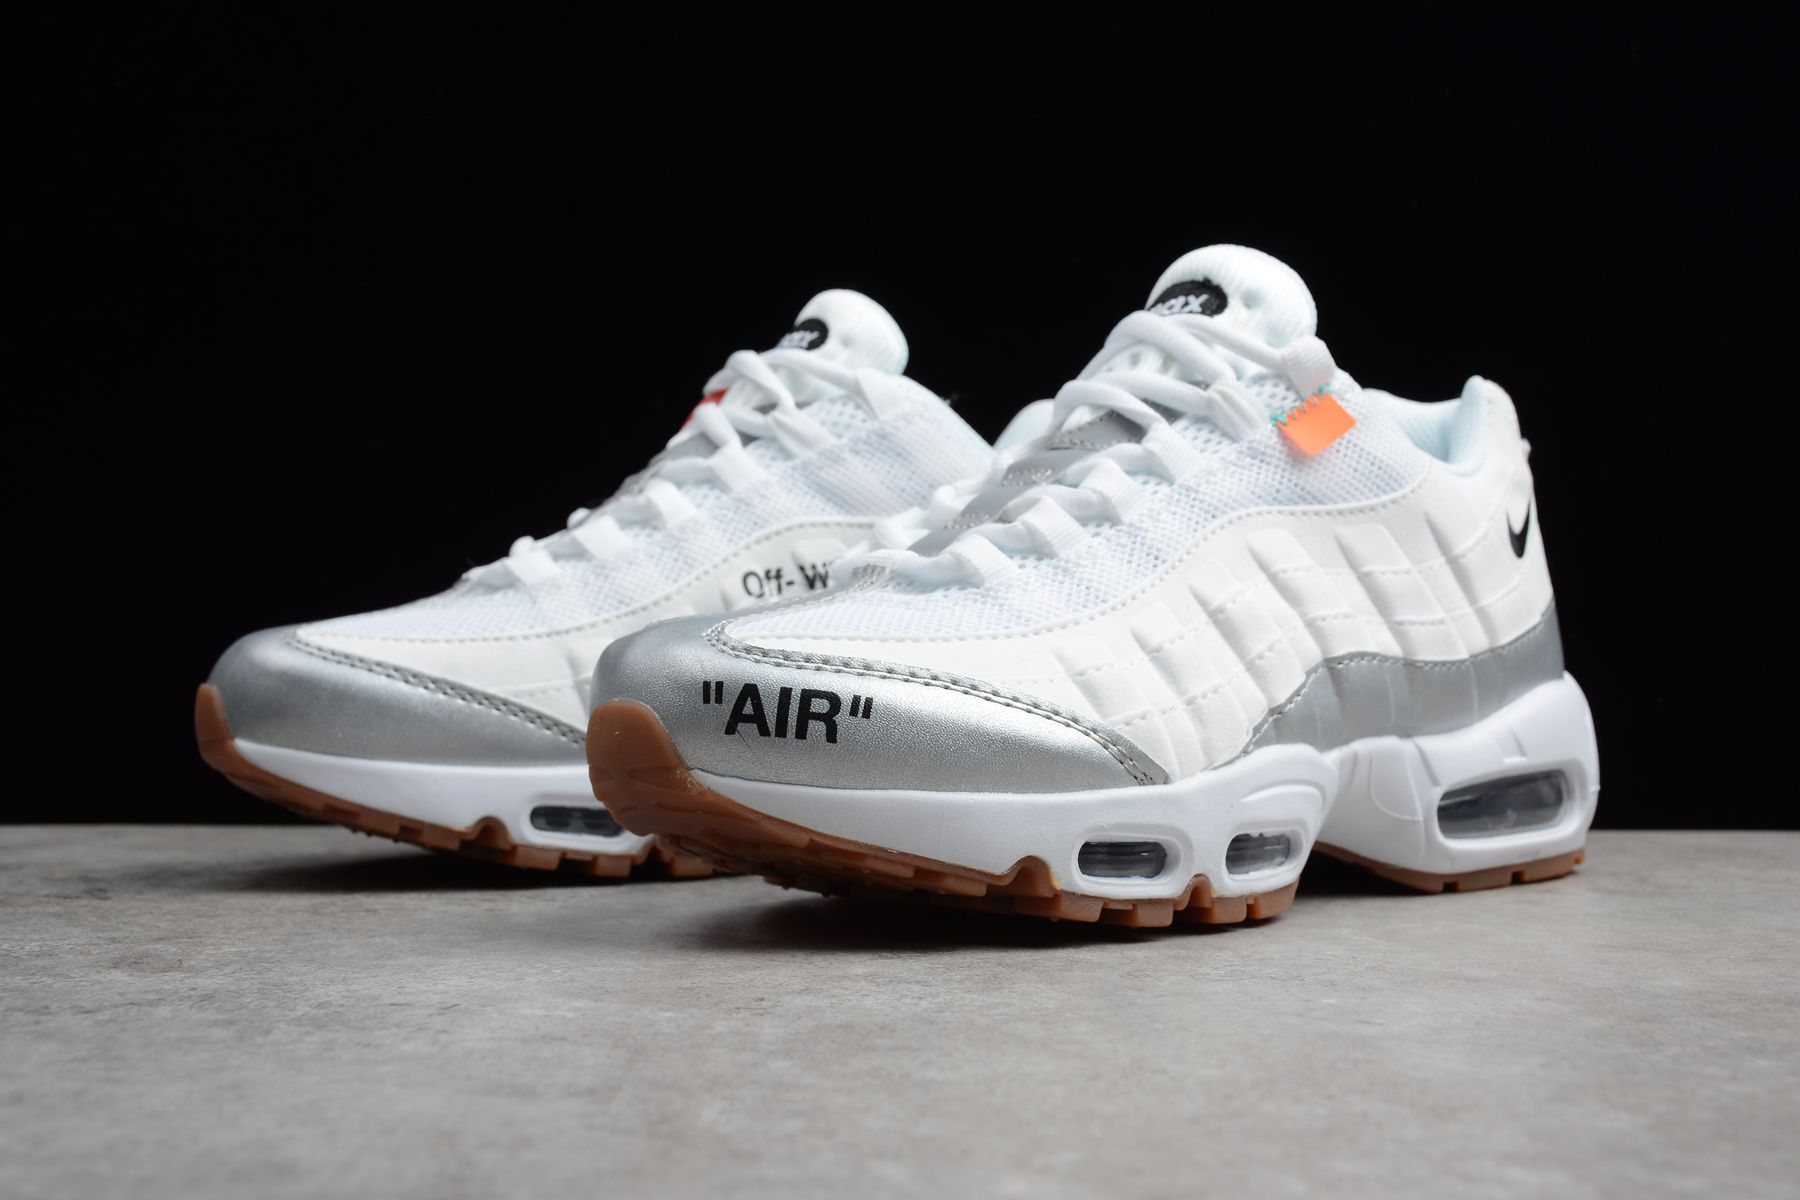 cheaper 67f78 74e90 Off-White x Nike Air Max 95 White Silver Mens Size 609048-159